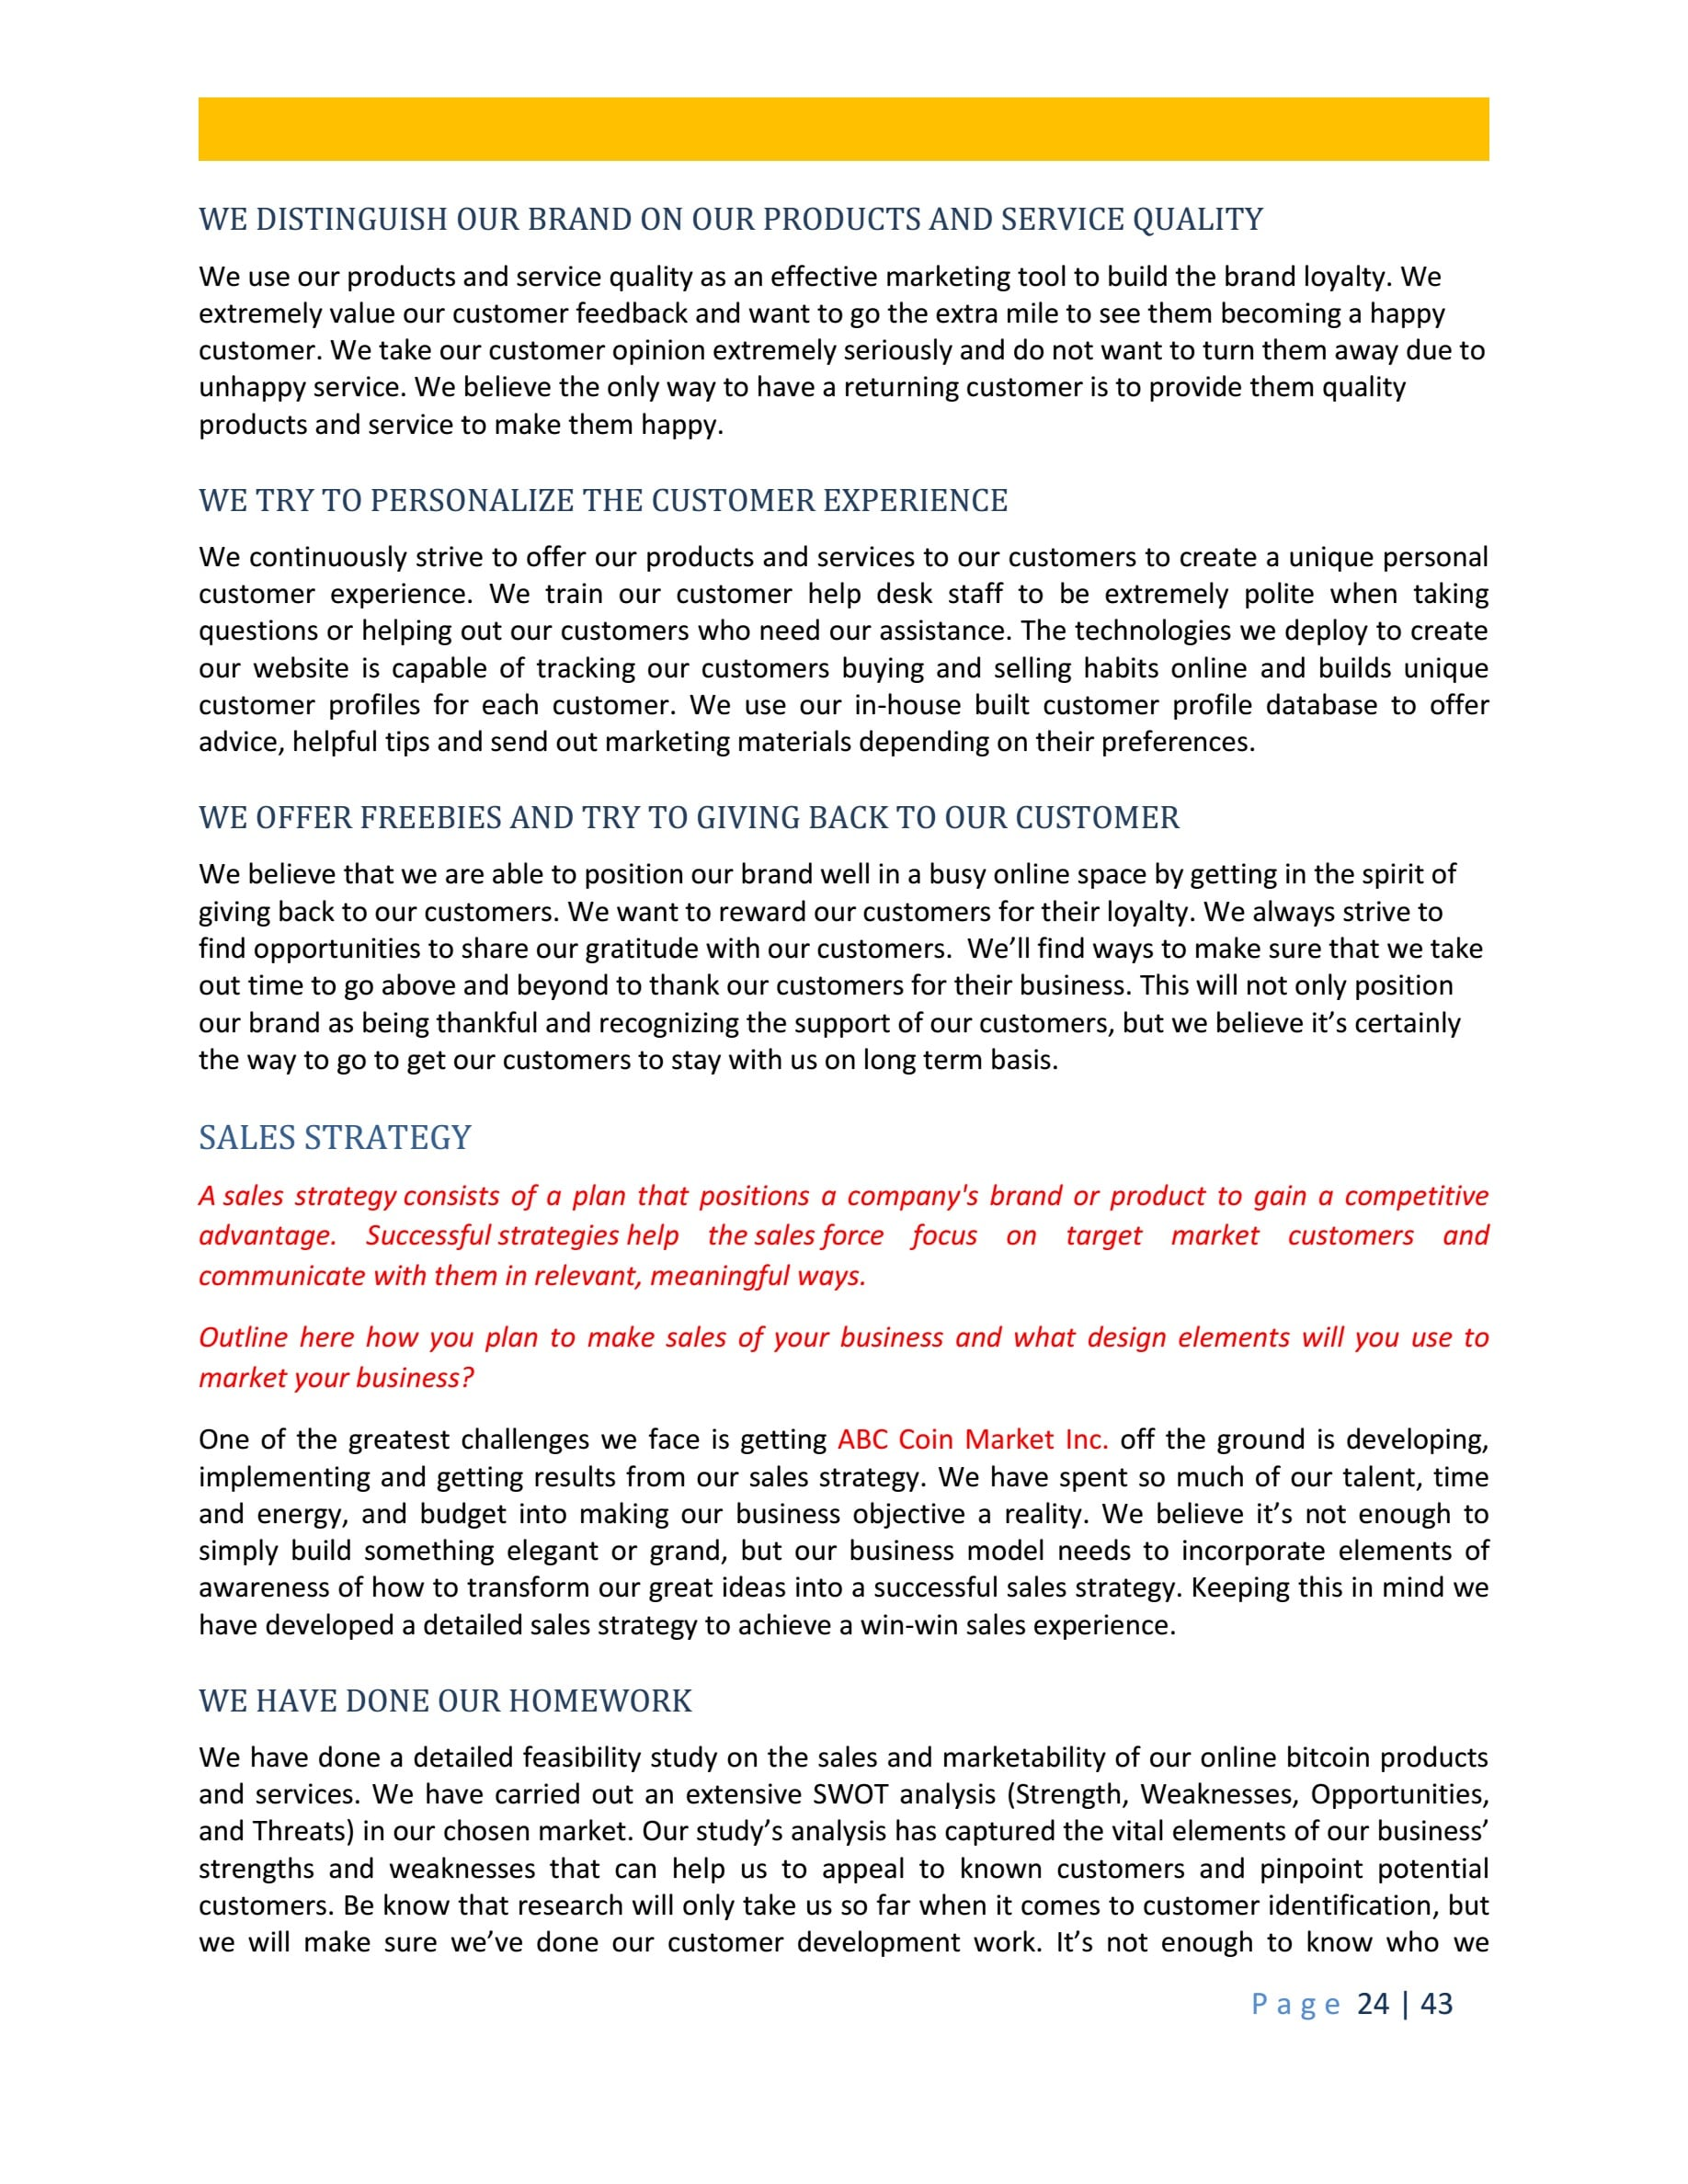 Bitcoin Business Plan Template Sample Pages - Black Box